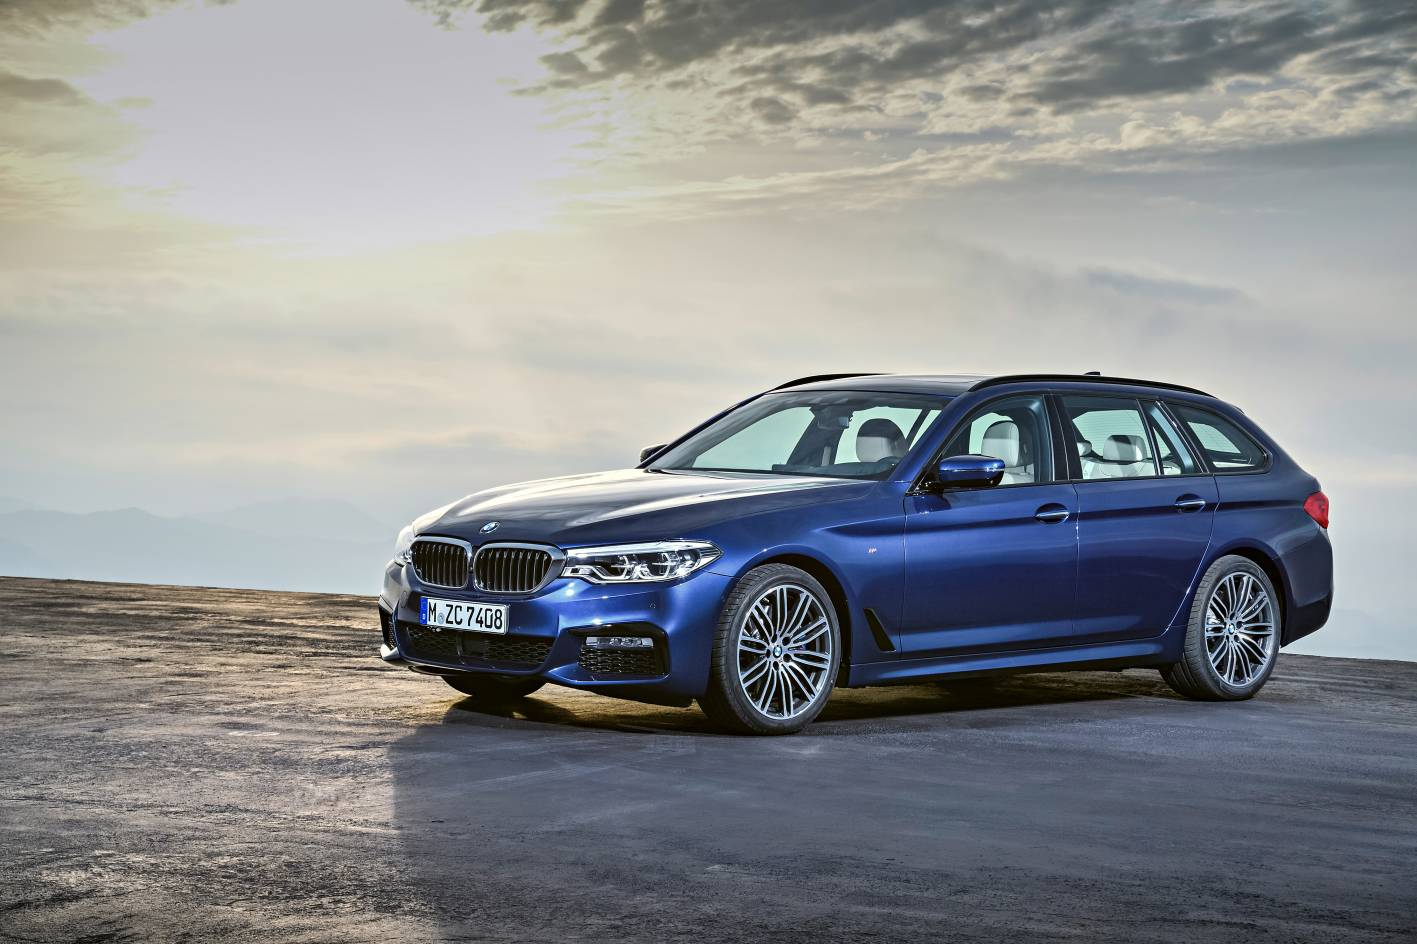 BMW 5 Series Touring Pricing And Specifications Announced